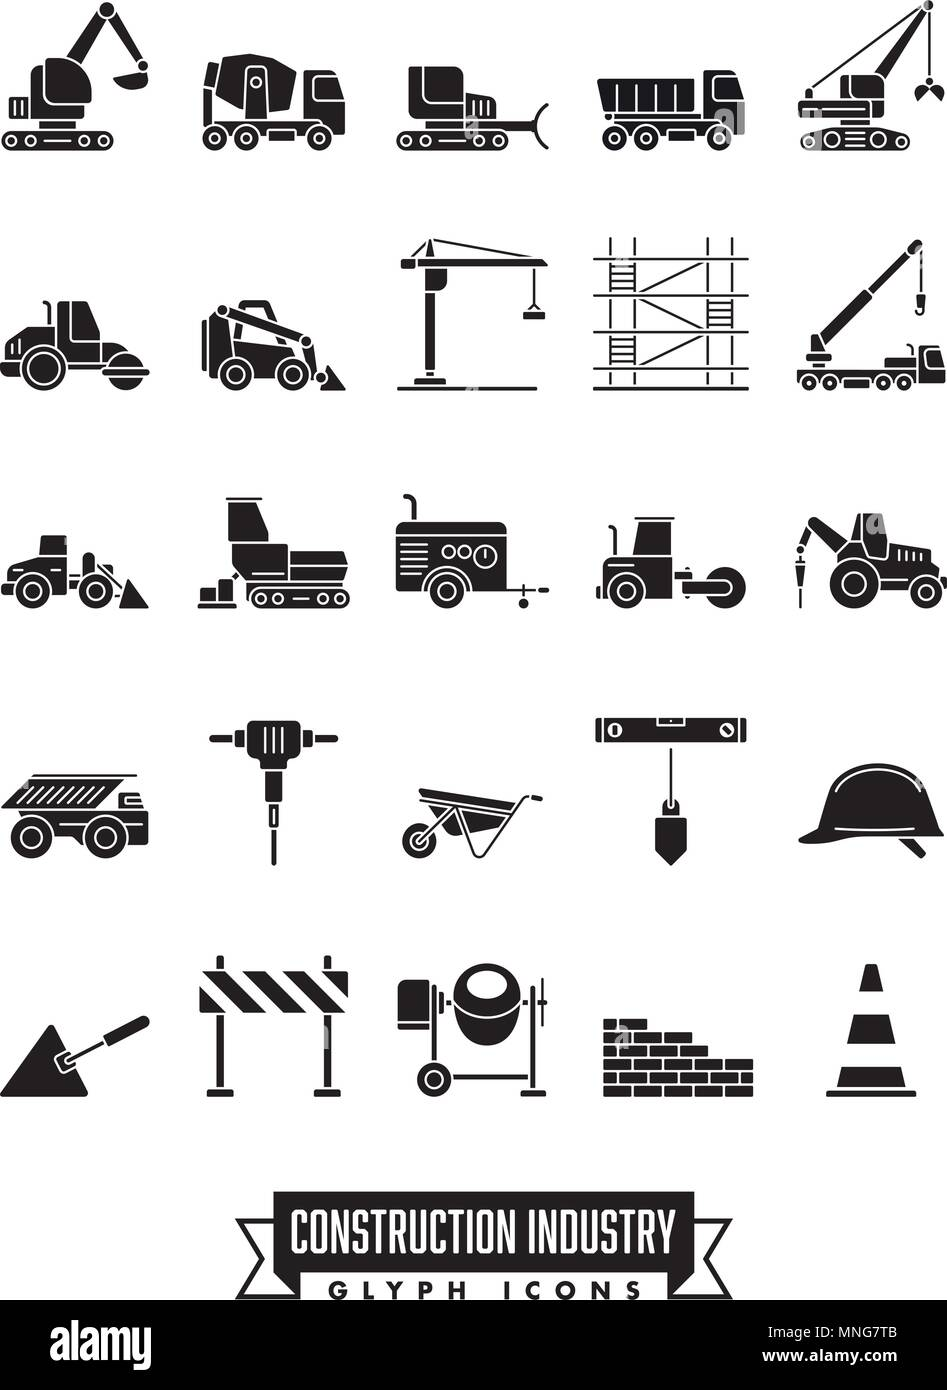 Industrial construction machinery and tools solid black icon collection - Stock Vector